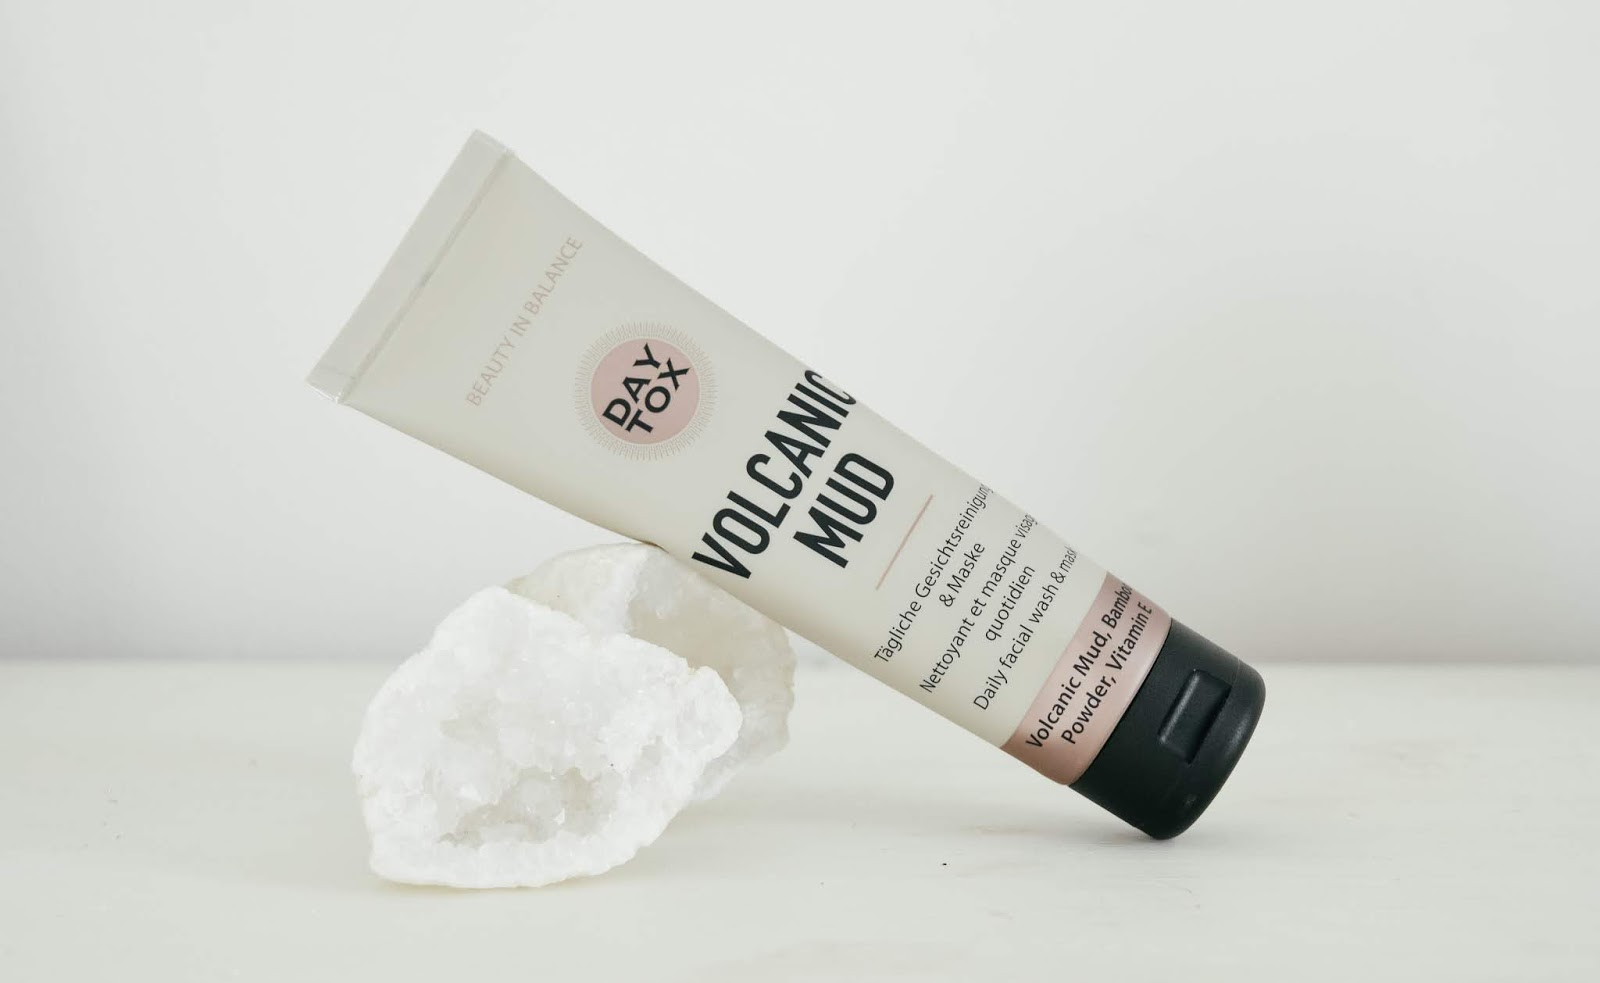 Daytox Volcanic Mud review, UK beauty blog, Hampshire bloggers, Dalry Rose blog